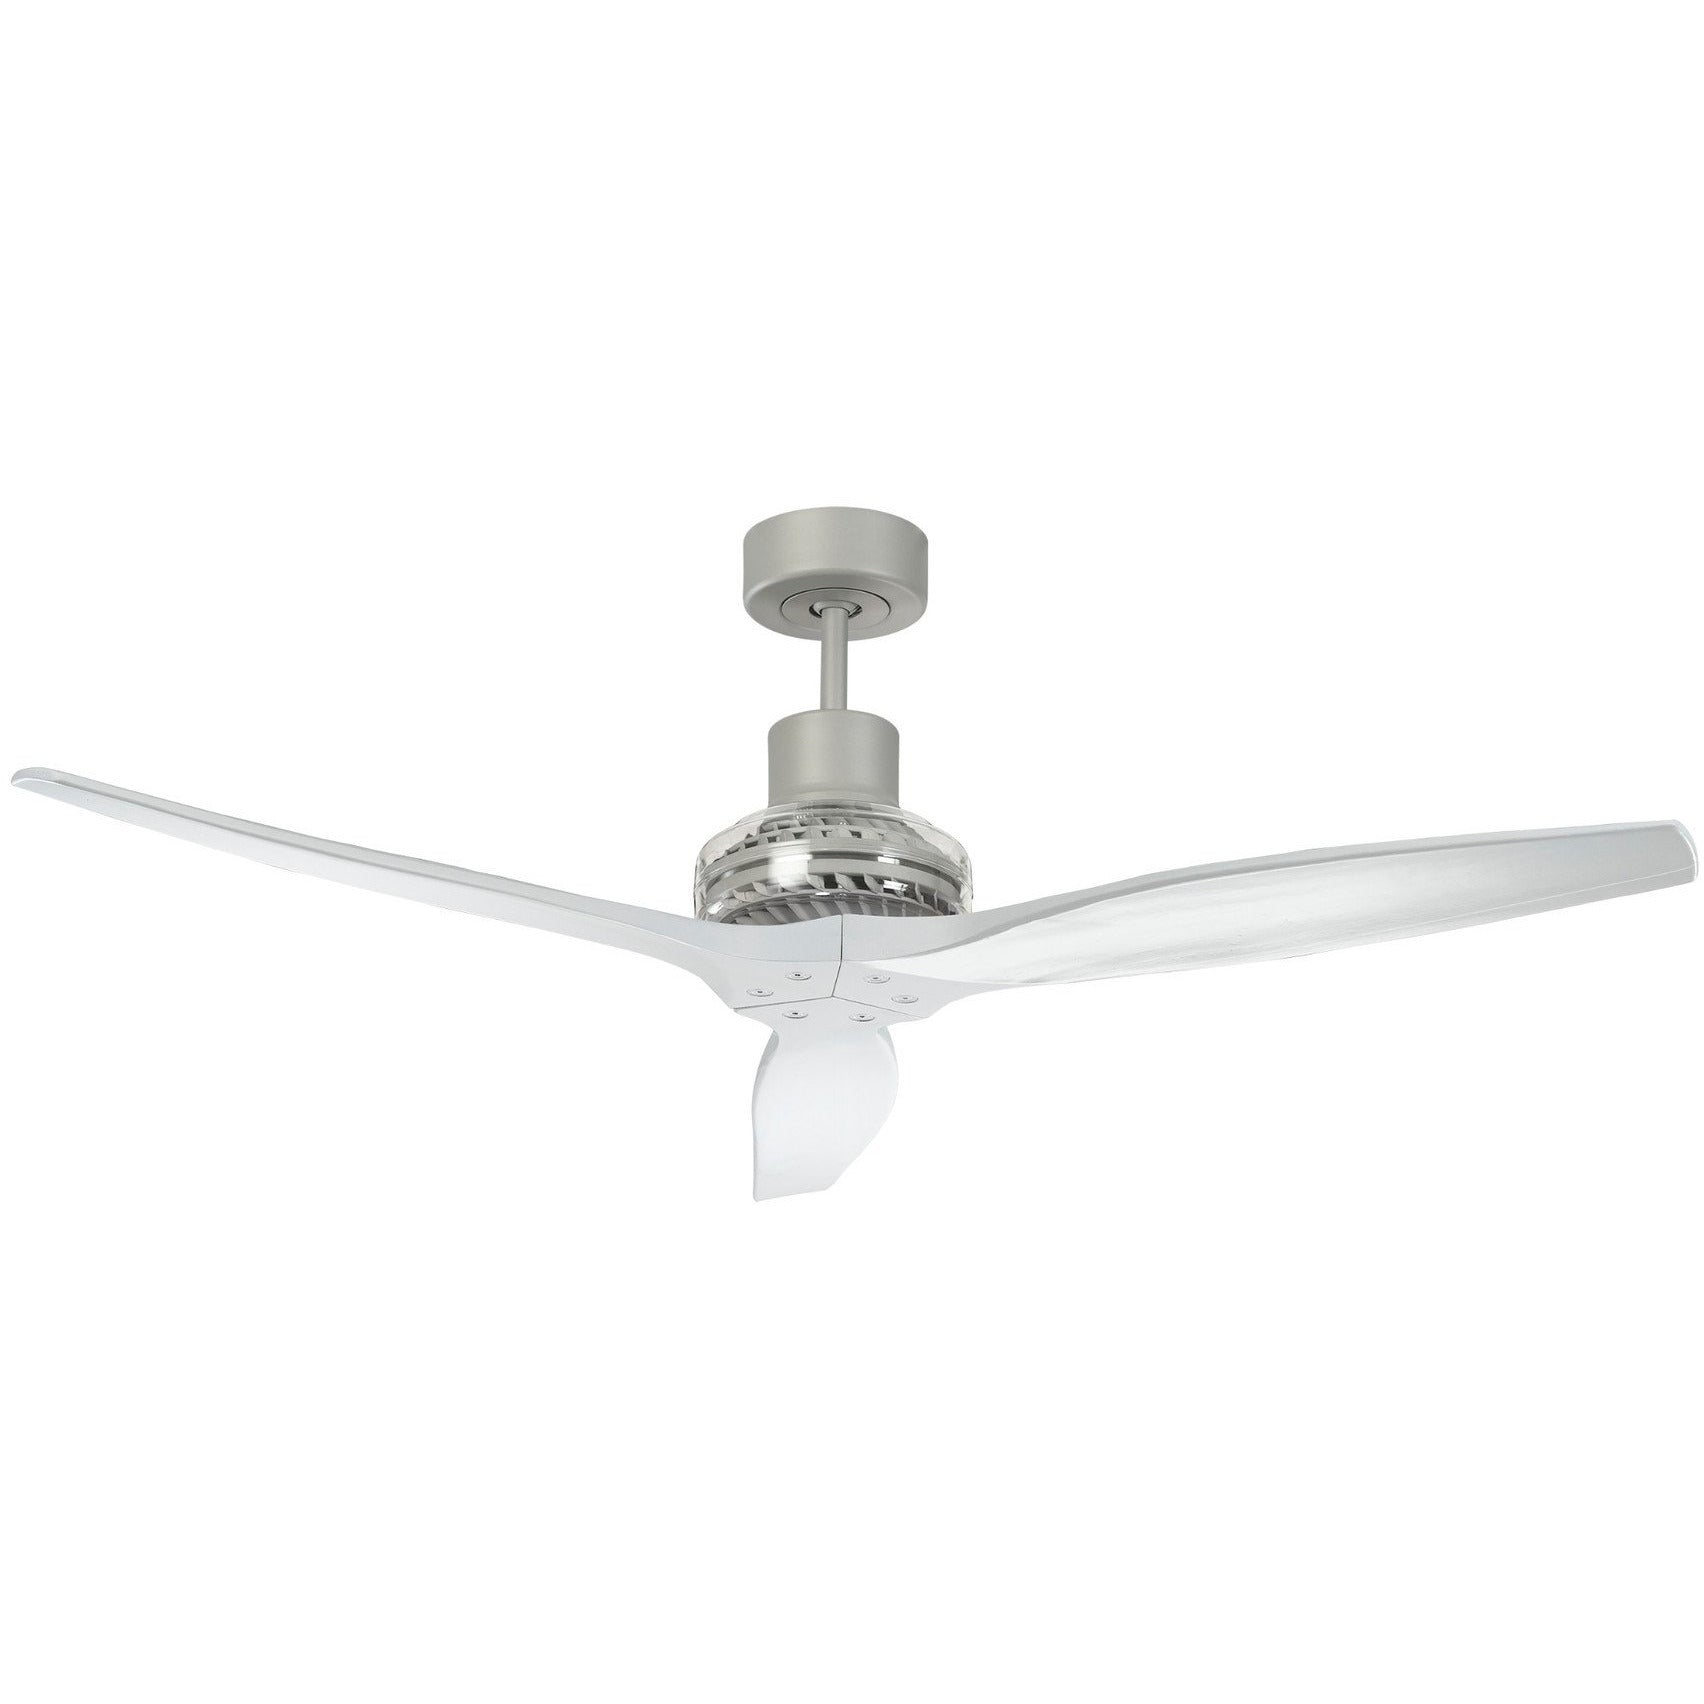 Design your ceiling fan star propeller star fans ceiling fans outdoor fan modern fan beautiful aloadofball Image collections